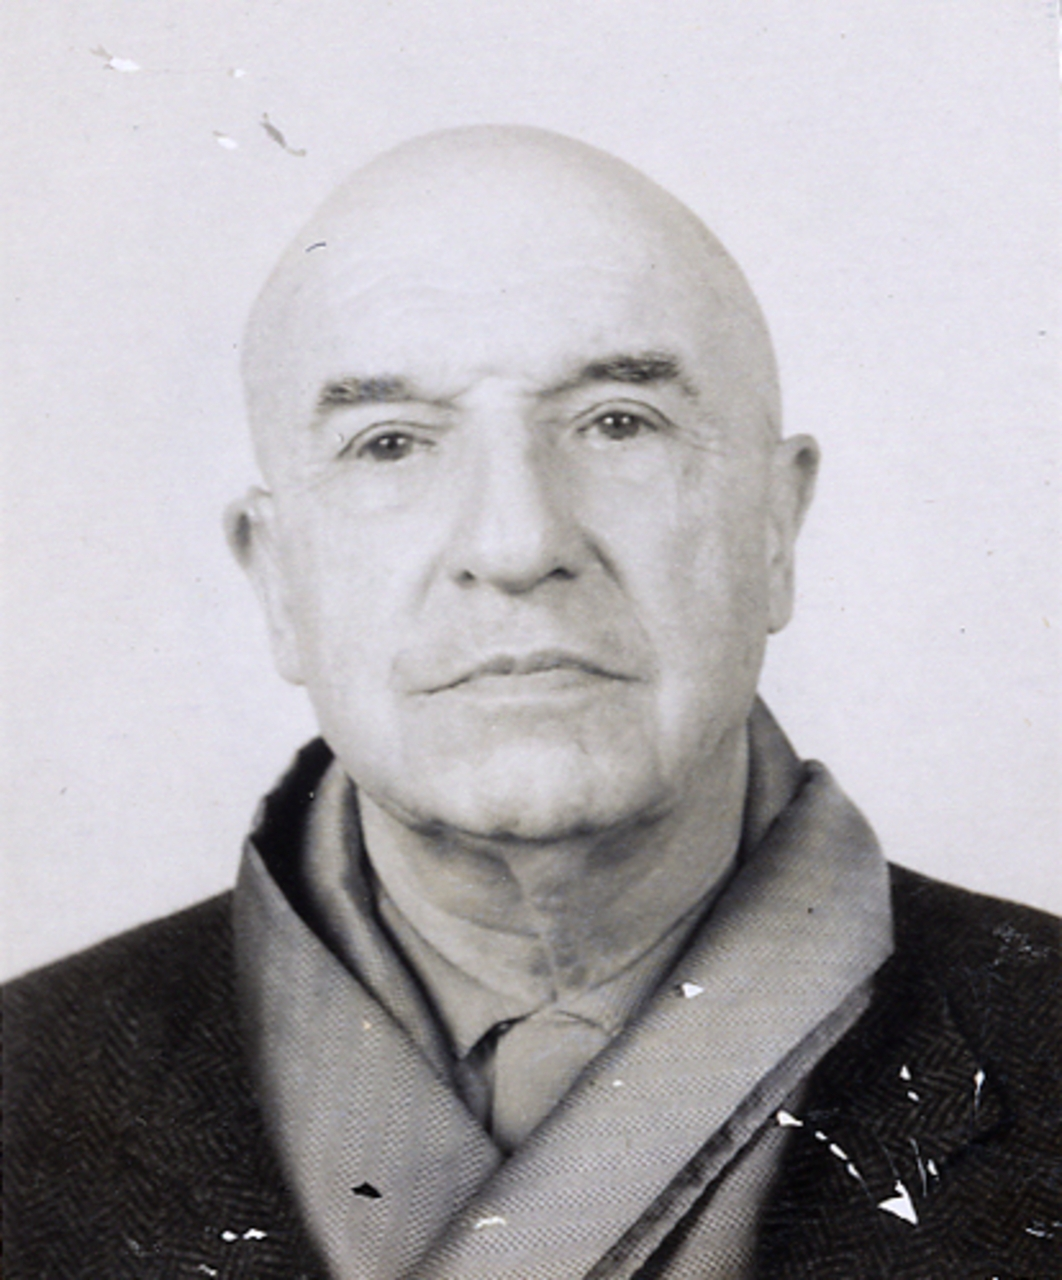 image for Fougeron, André (1913-1998)